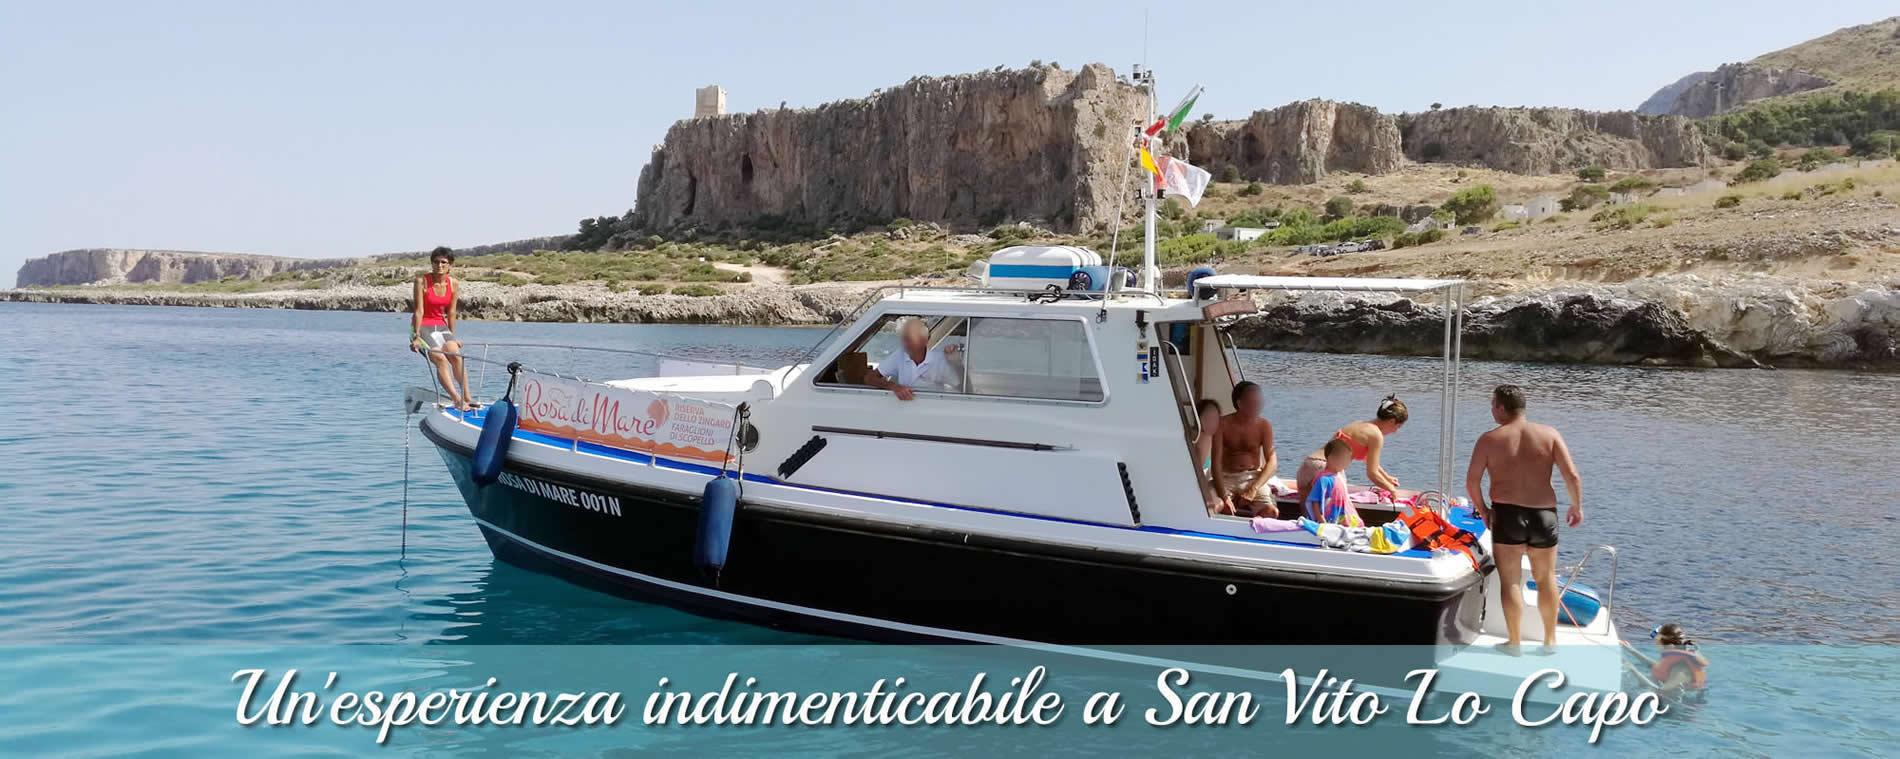 Excursions in San Vito lo Capo